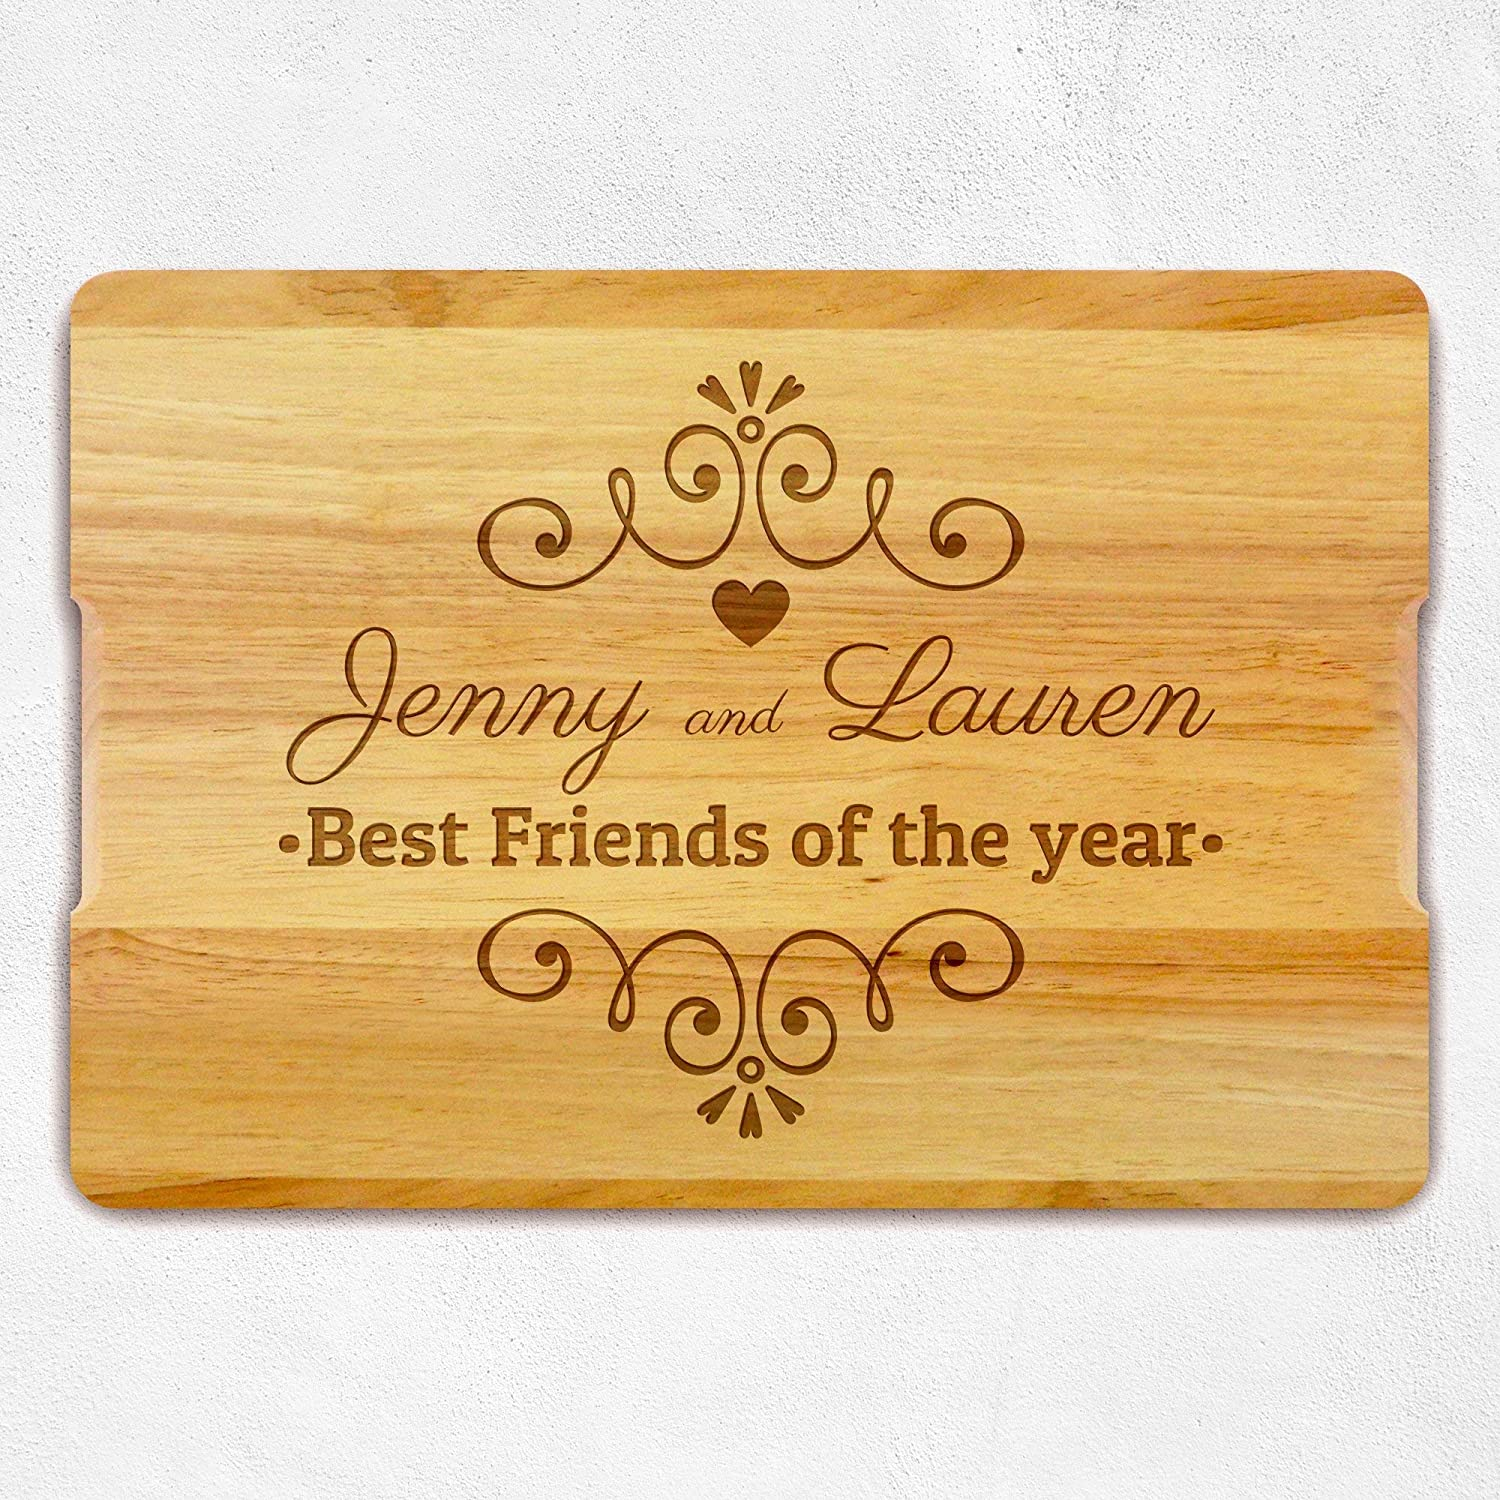 Best Friend Gift, Christmas Gift, Wooden Cutting Board, Anniversary gift, Custom Chopping Board, Personalized Gift, Gift for Friends